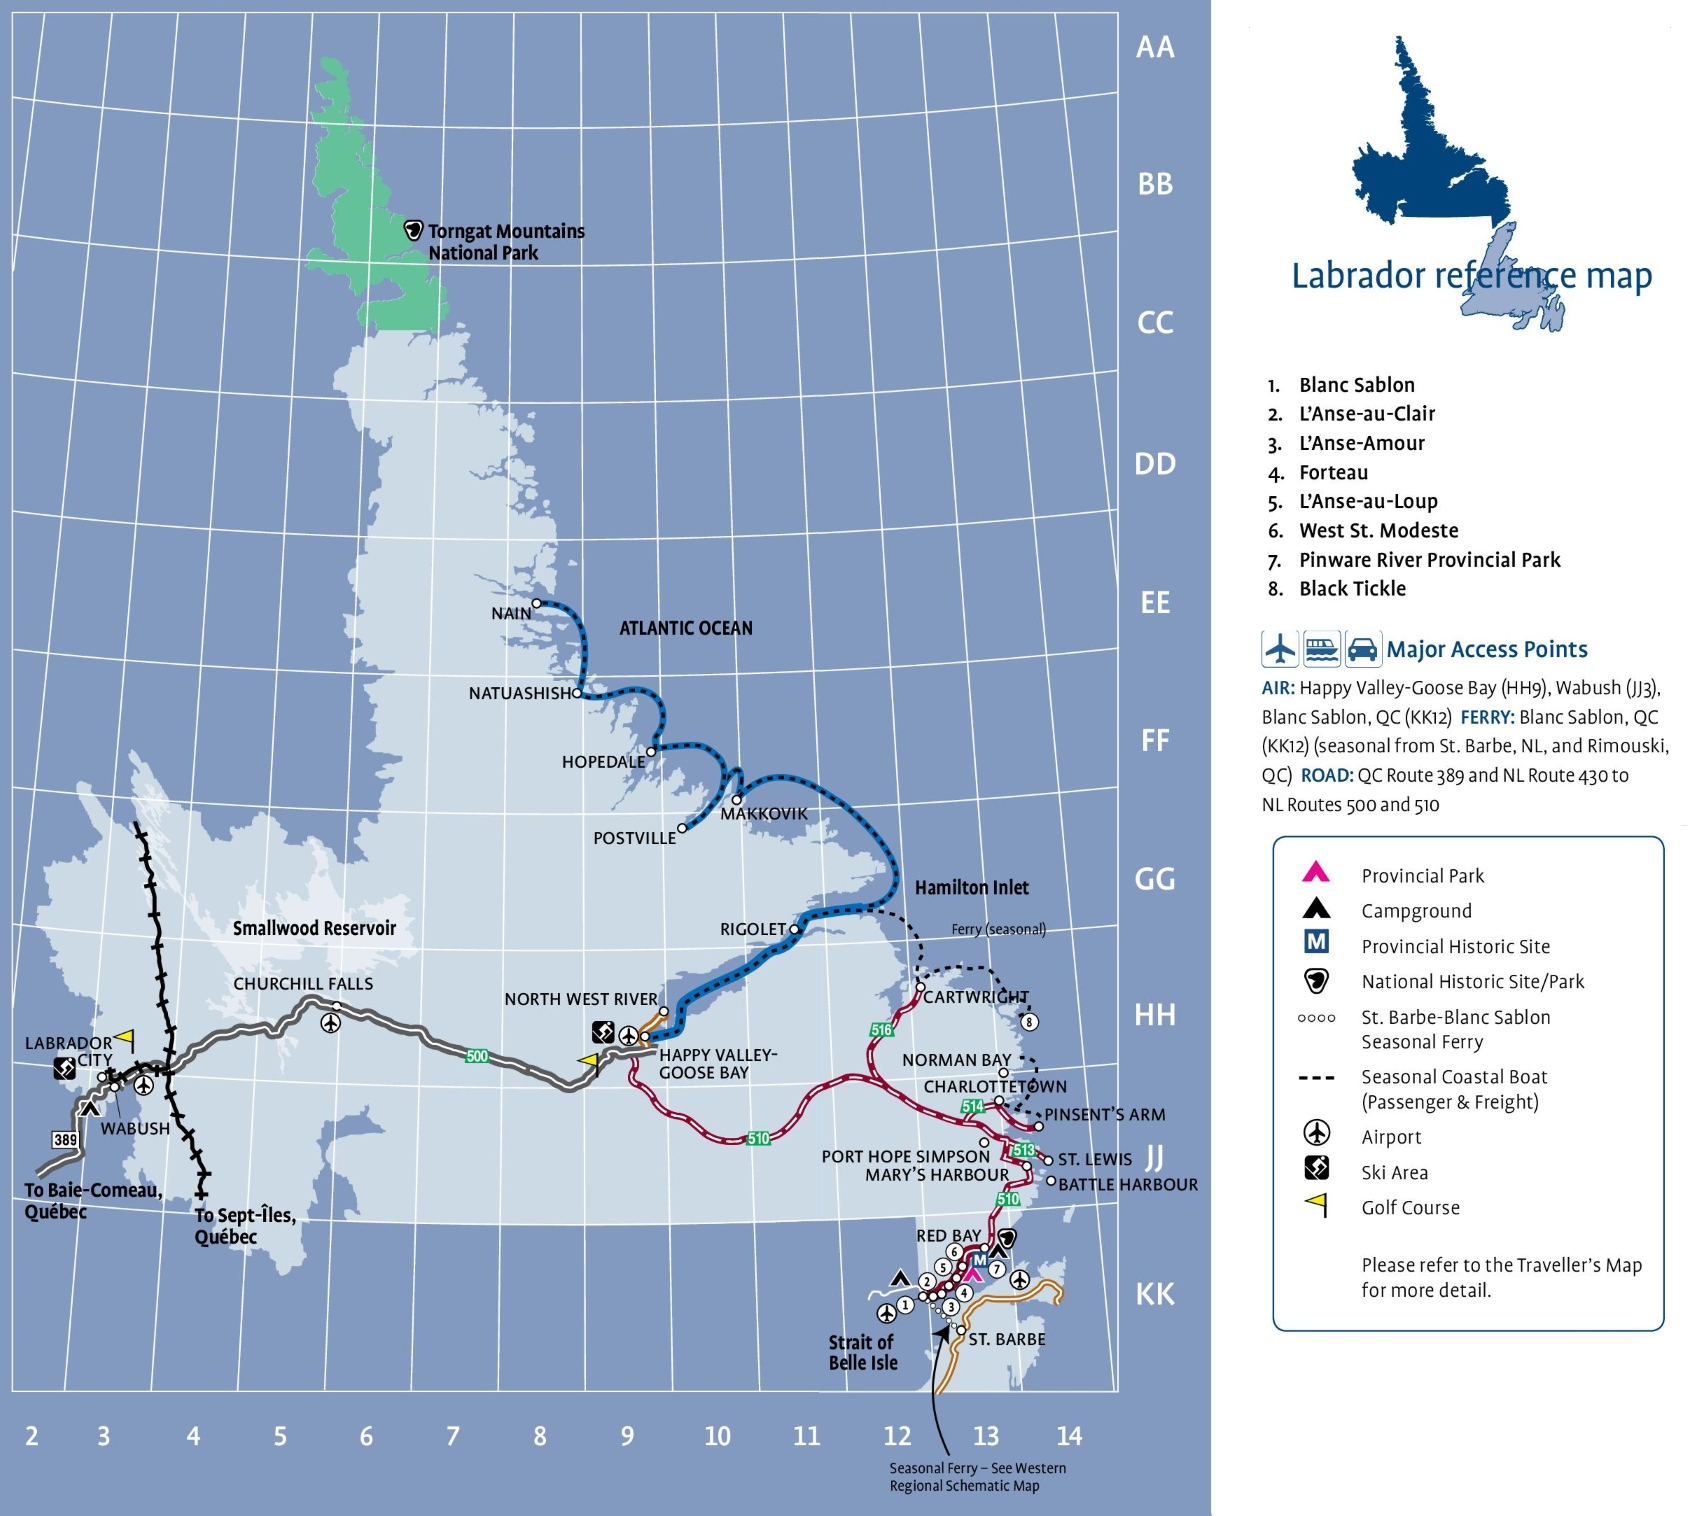 labrador tourist map